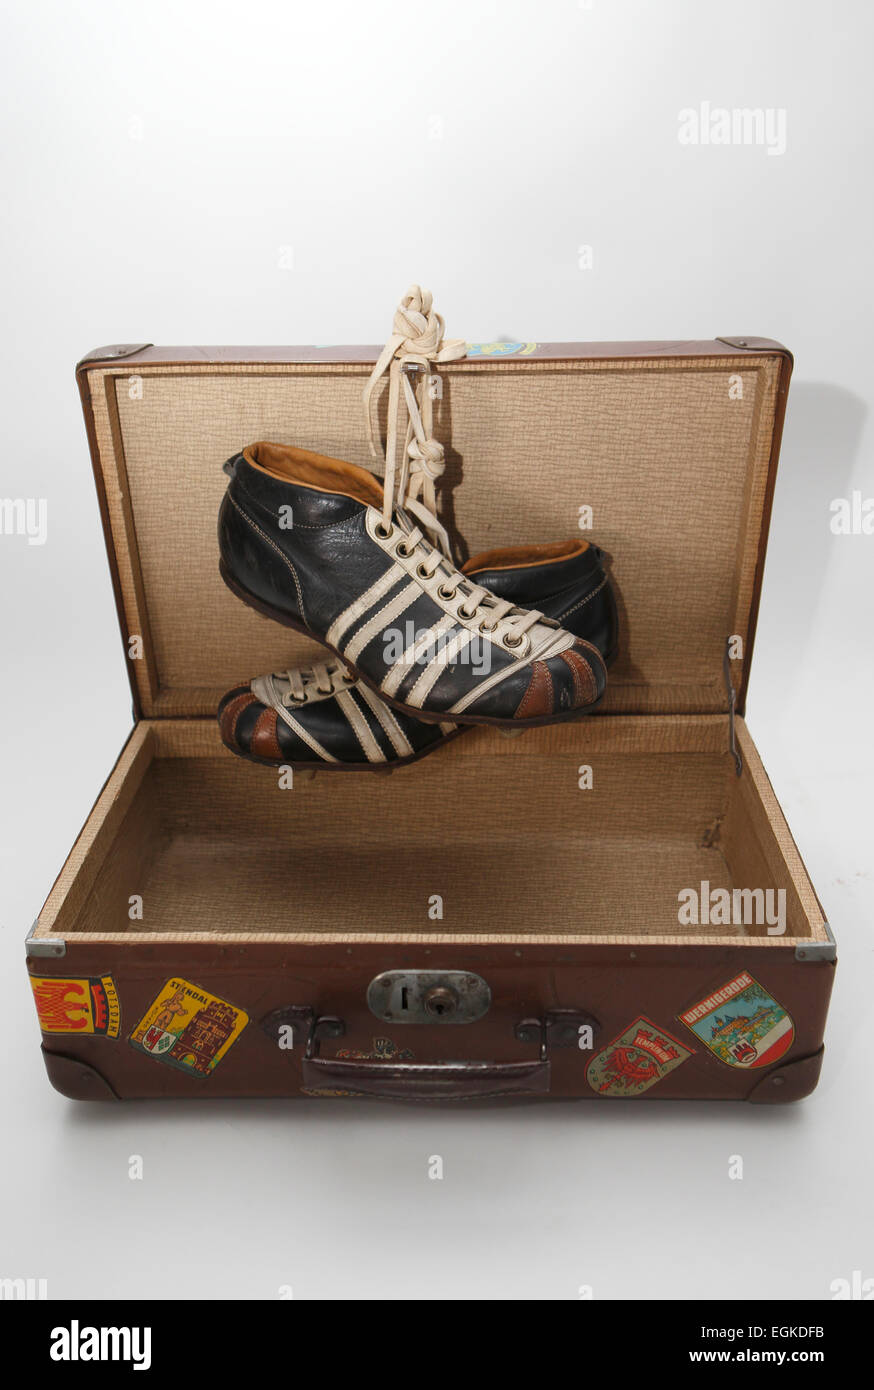 GER, football boots - Stock Image